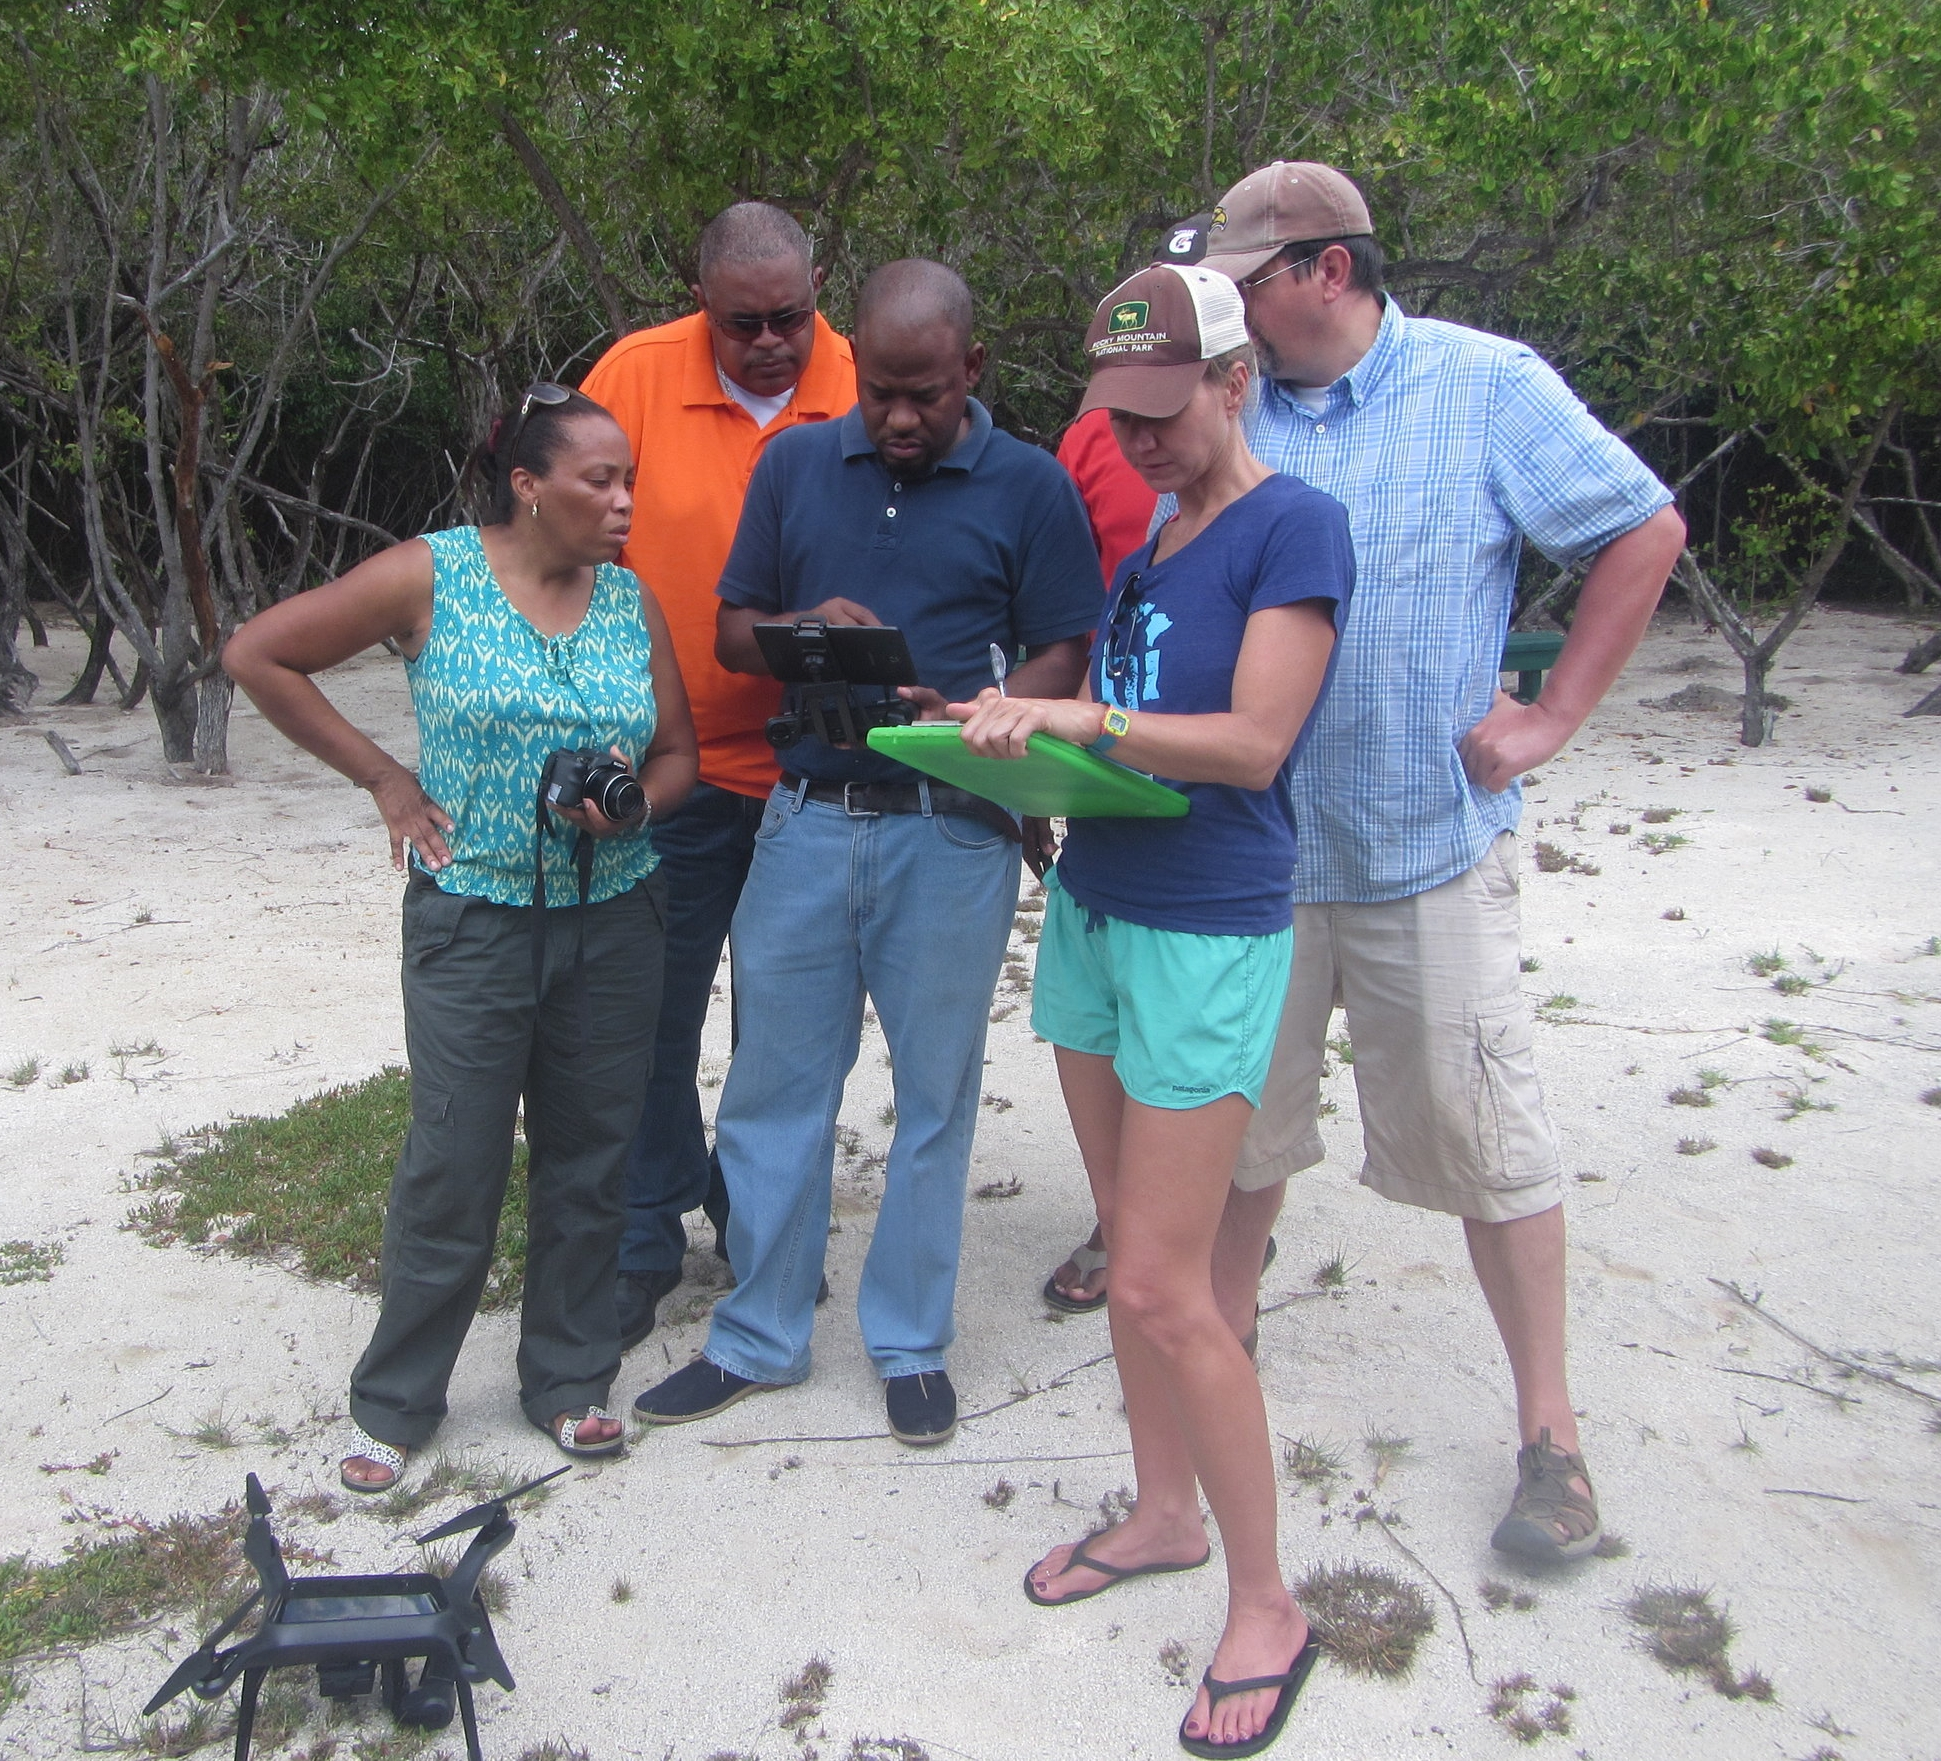 Students conducting UAV aerial mapping survey as part of a drone training course using a 3DR Solo in Antigua, Caribbean by Dr. Kim Baldwin of Marine Spatial Information Solutions (MarSIS).